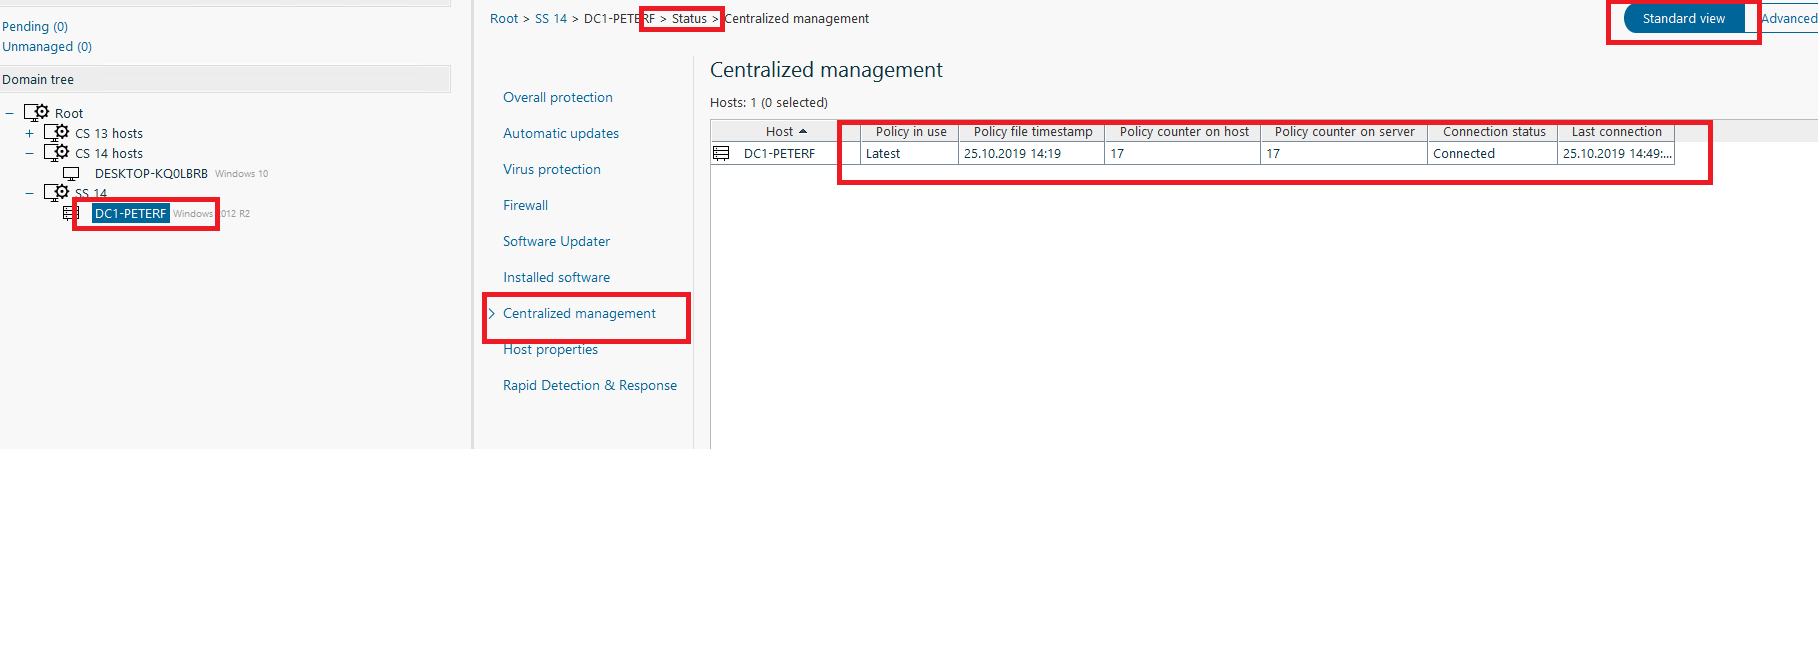 Centralized management view in Policy Manager Console